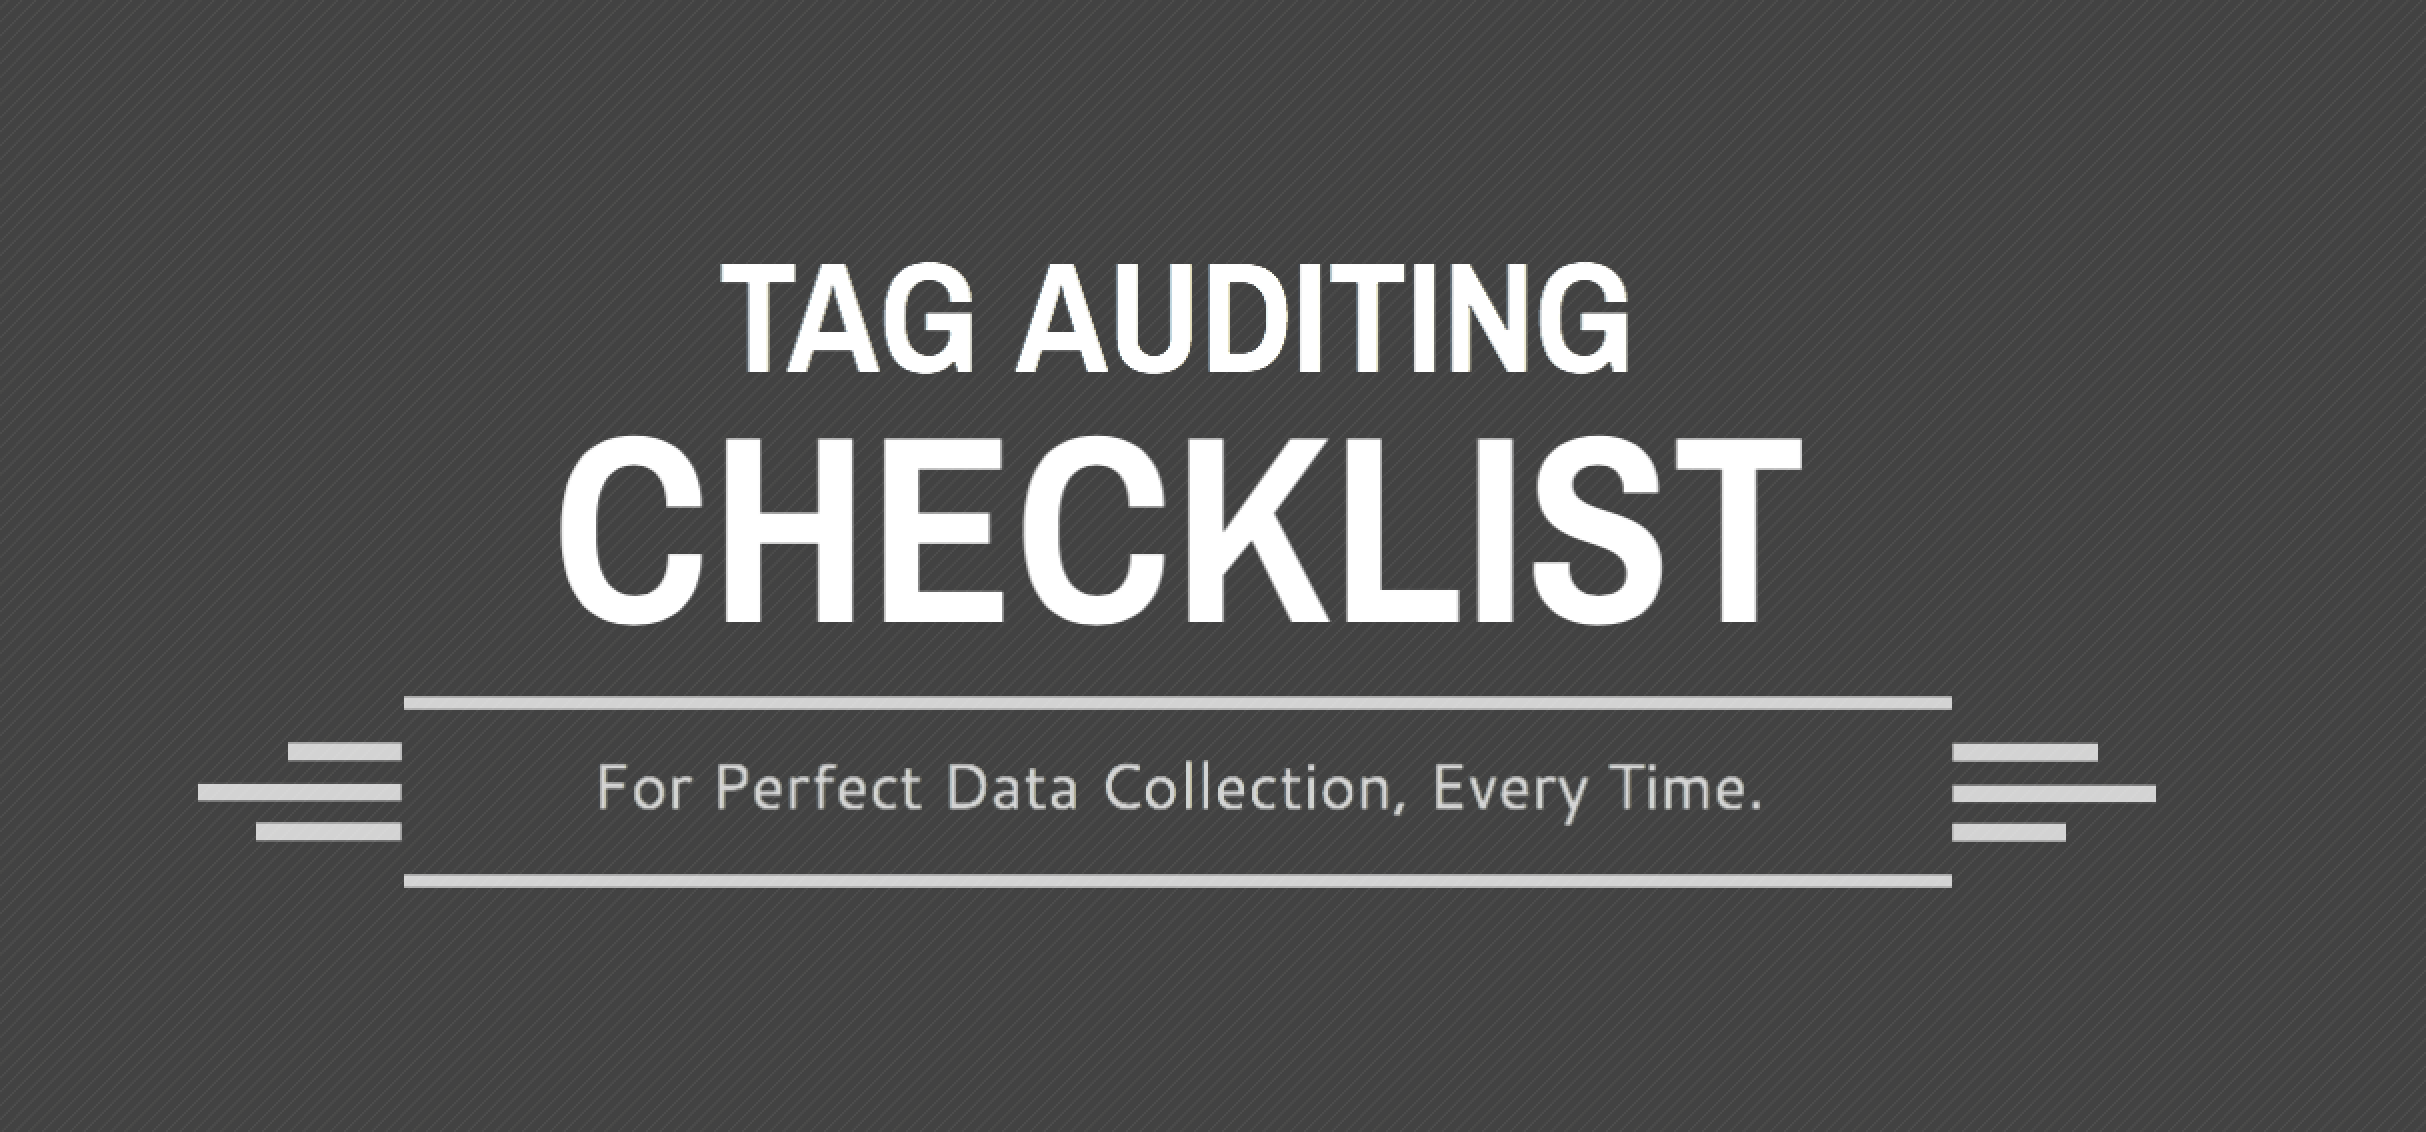 Tag Auditing Checklist Download